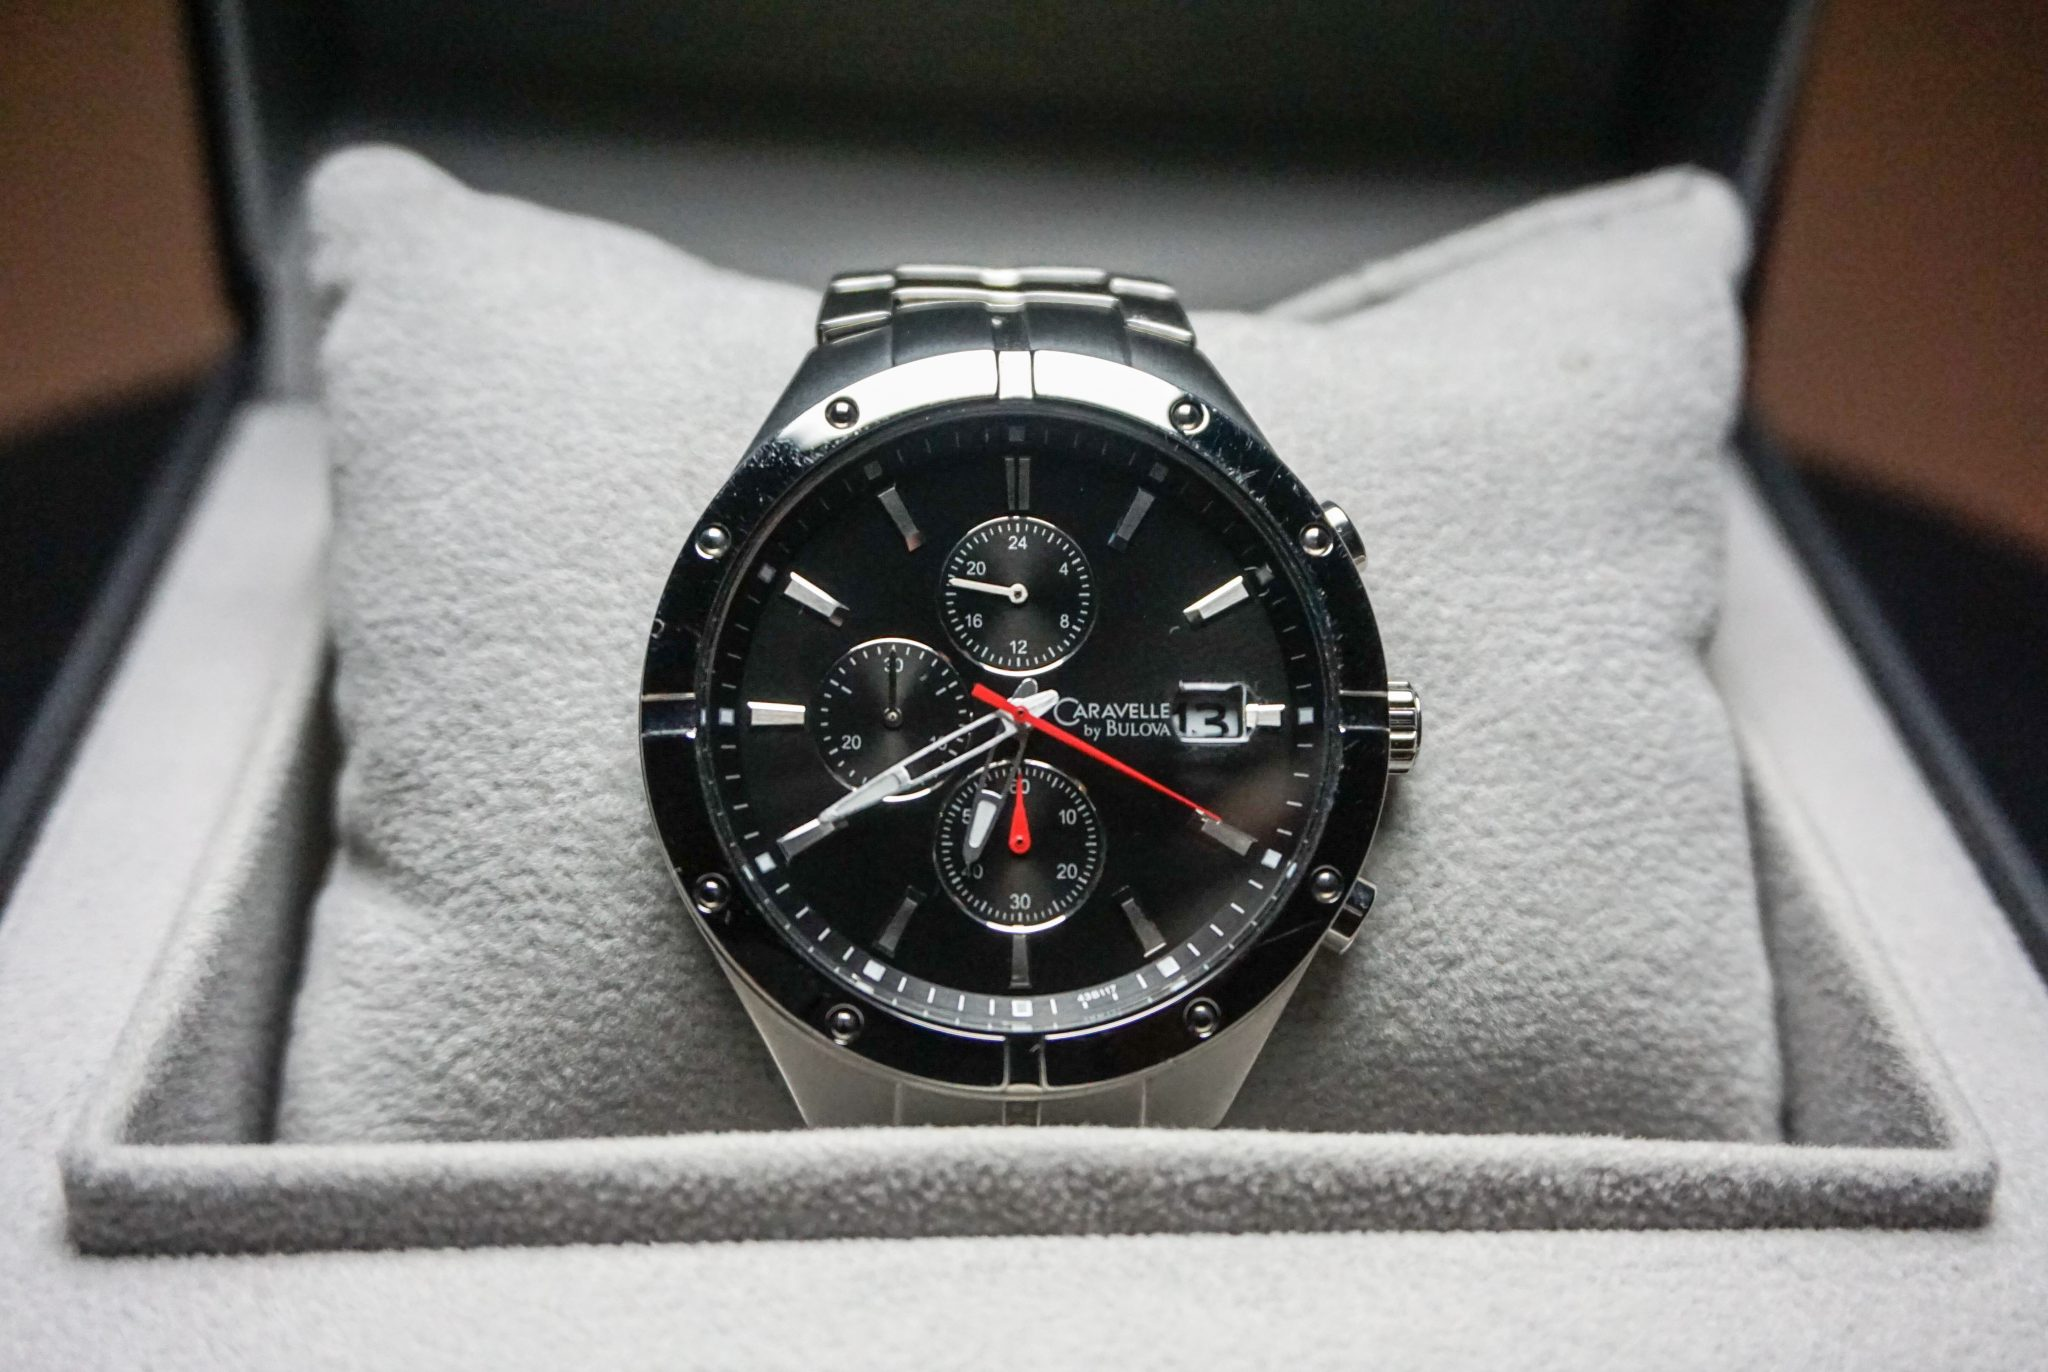 Mens Watches: How To Choose The Right Watch